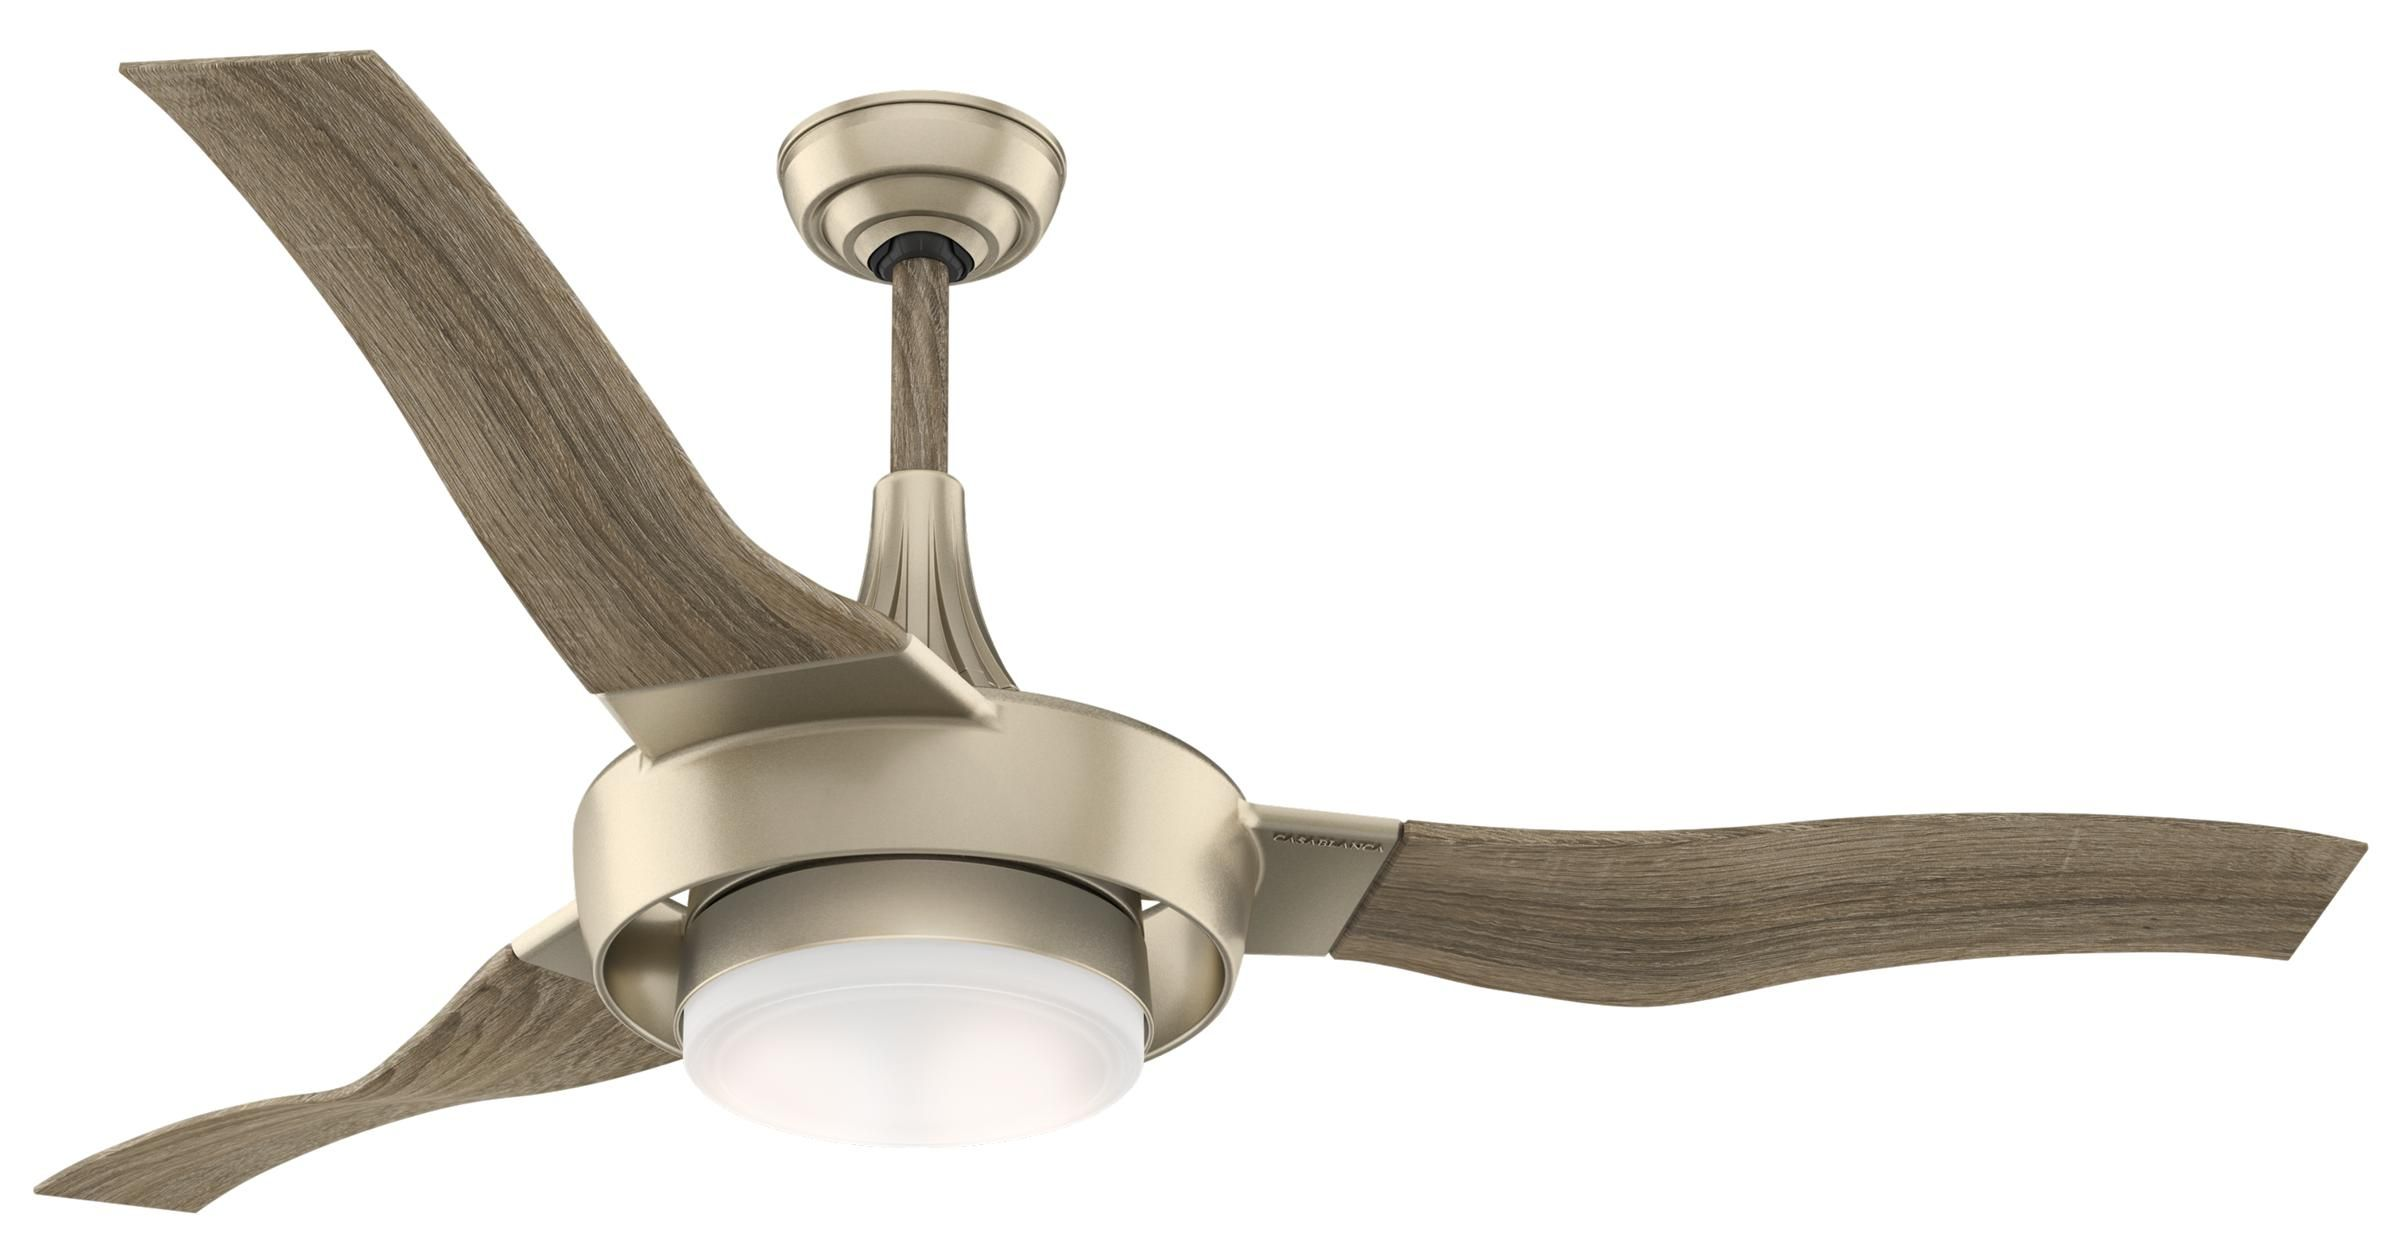 Casablanca ceiling fans design by christophe badarello perseus casablanca ceiling fans design by christophe badarello perseus 59168 airflow rating 7374 cfm aloadofball Image collections